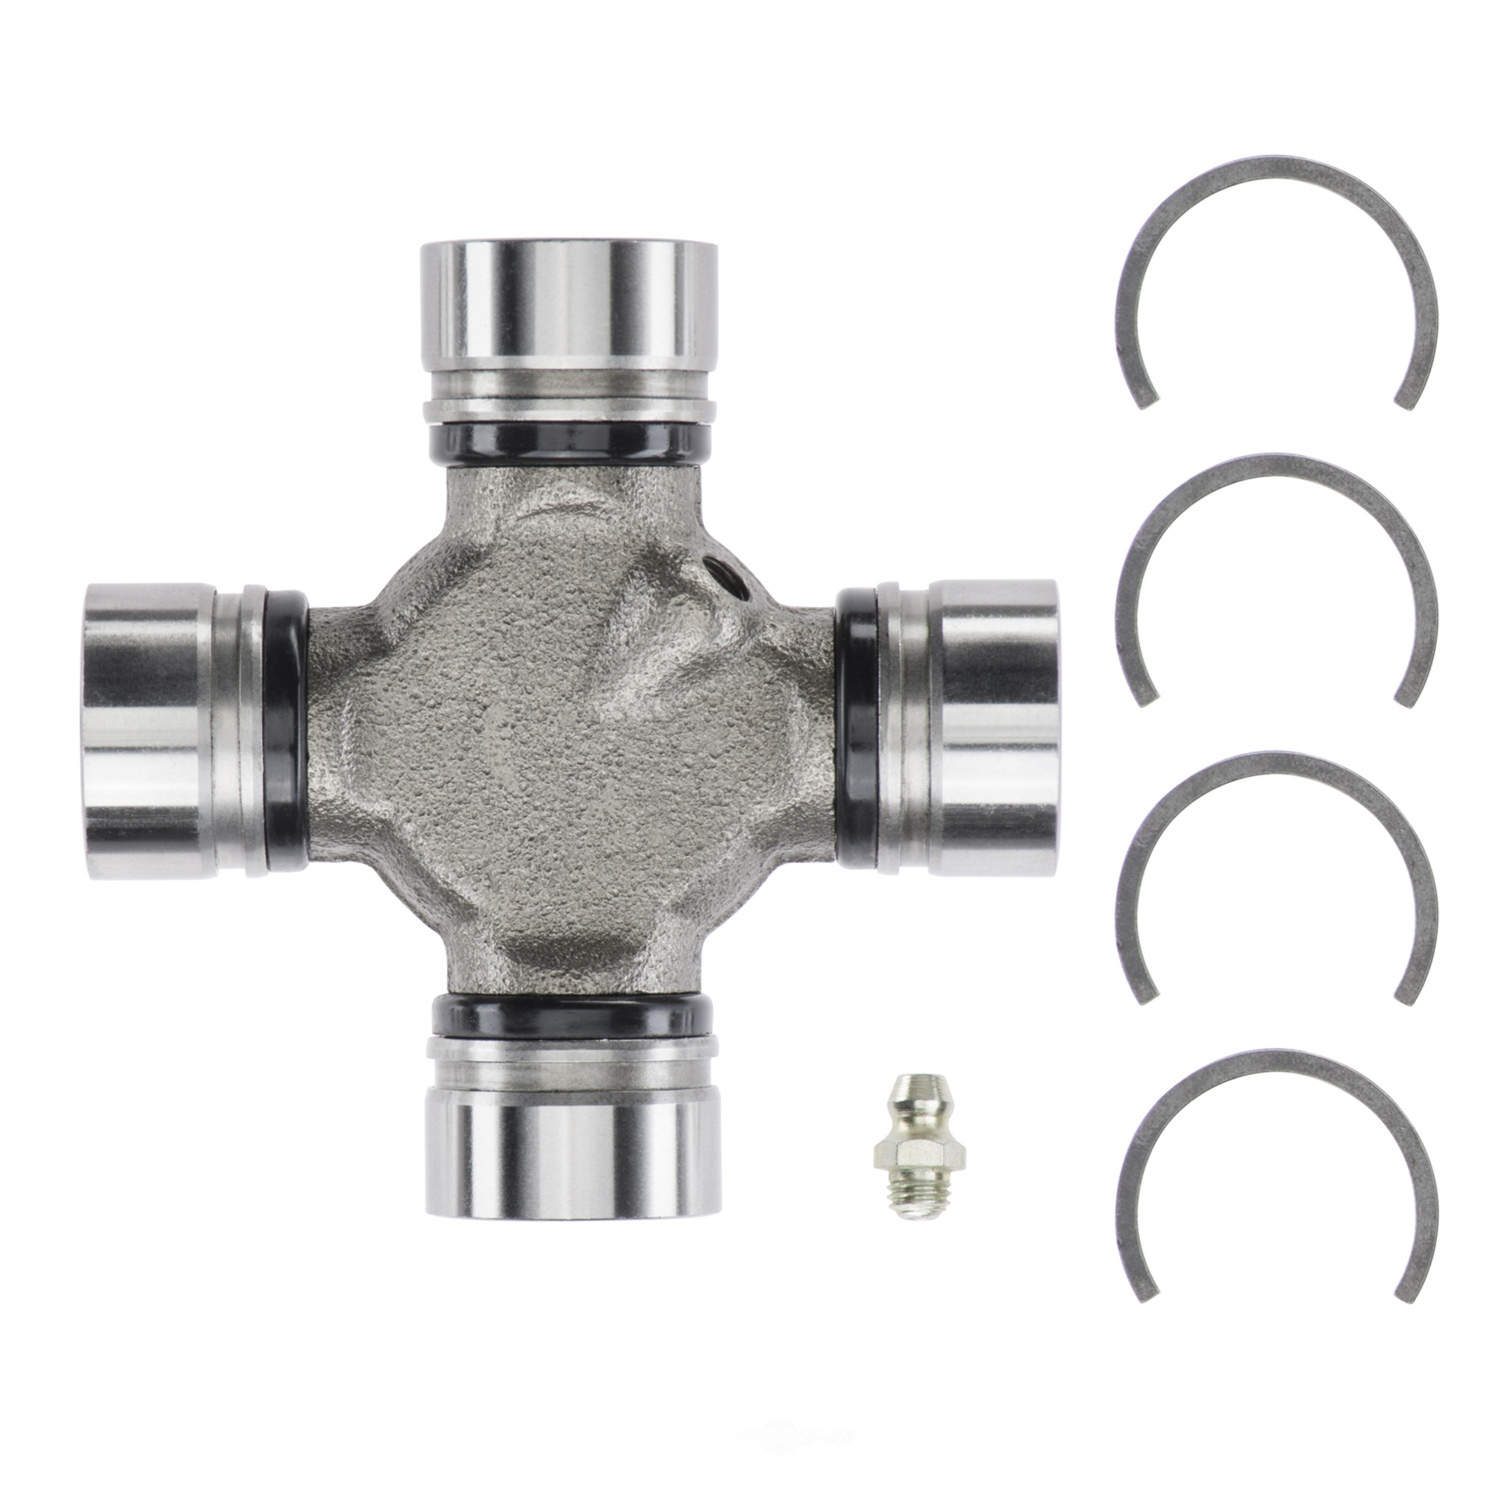 MOOG DRIVELINE PRODUCTS - Universal Joint - MDP 316